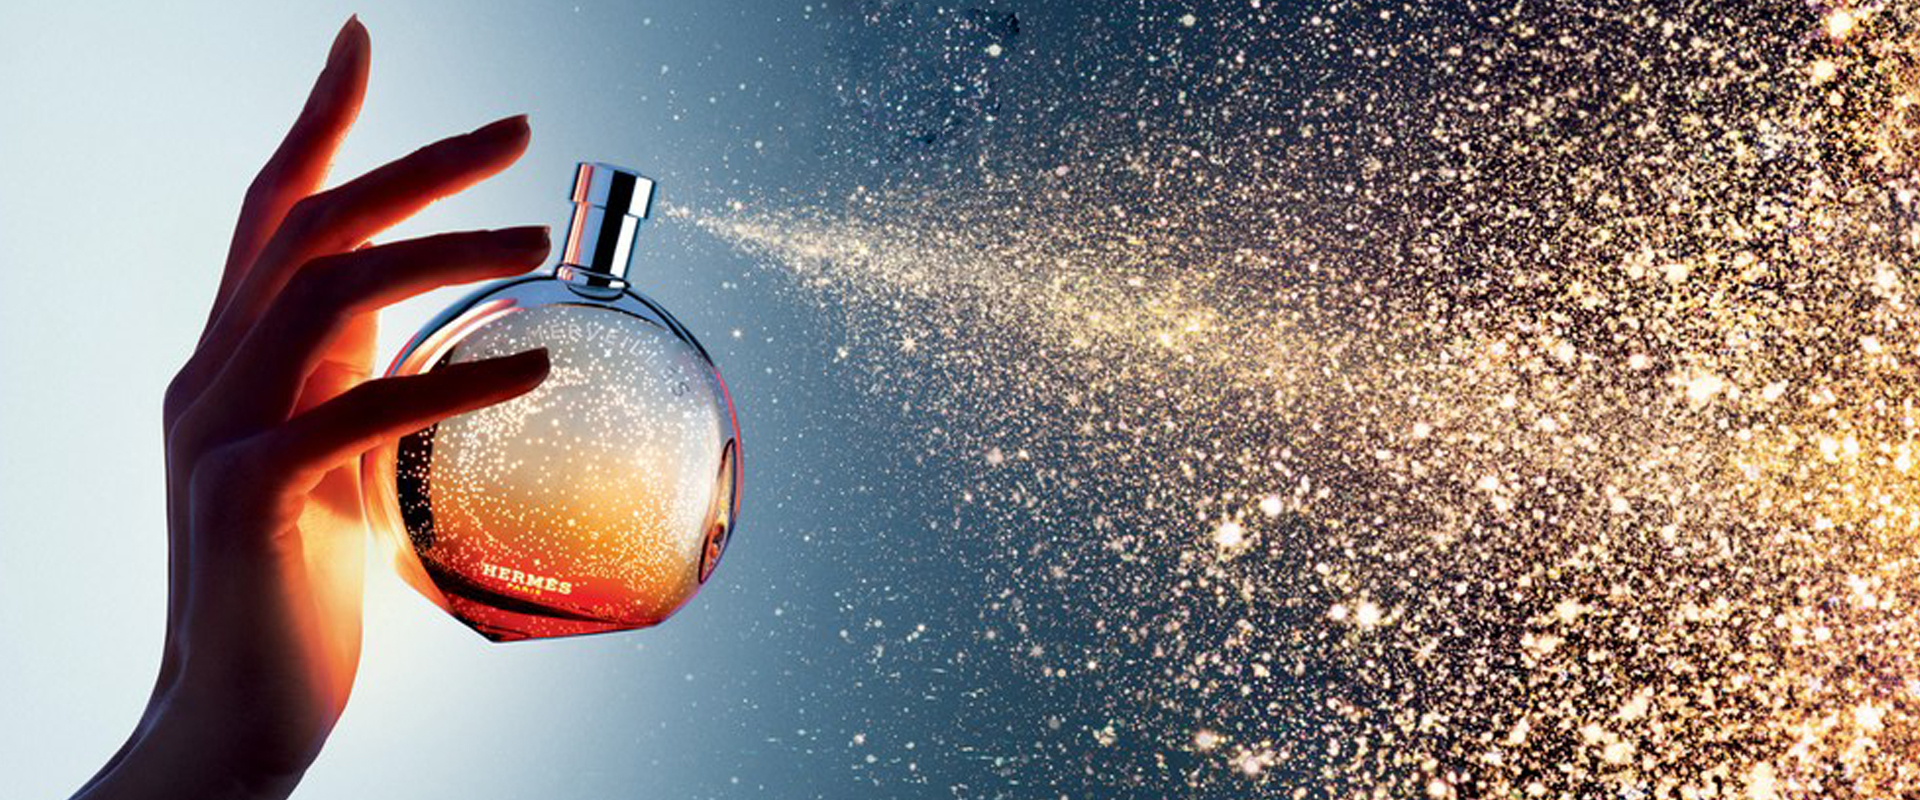 perfume decorative background  perfume  fragrance  gradual background image for free download